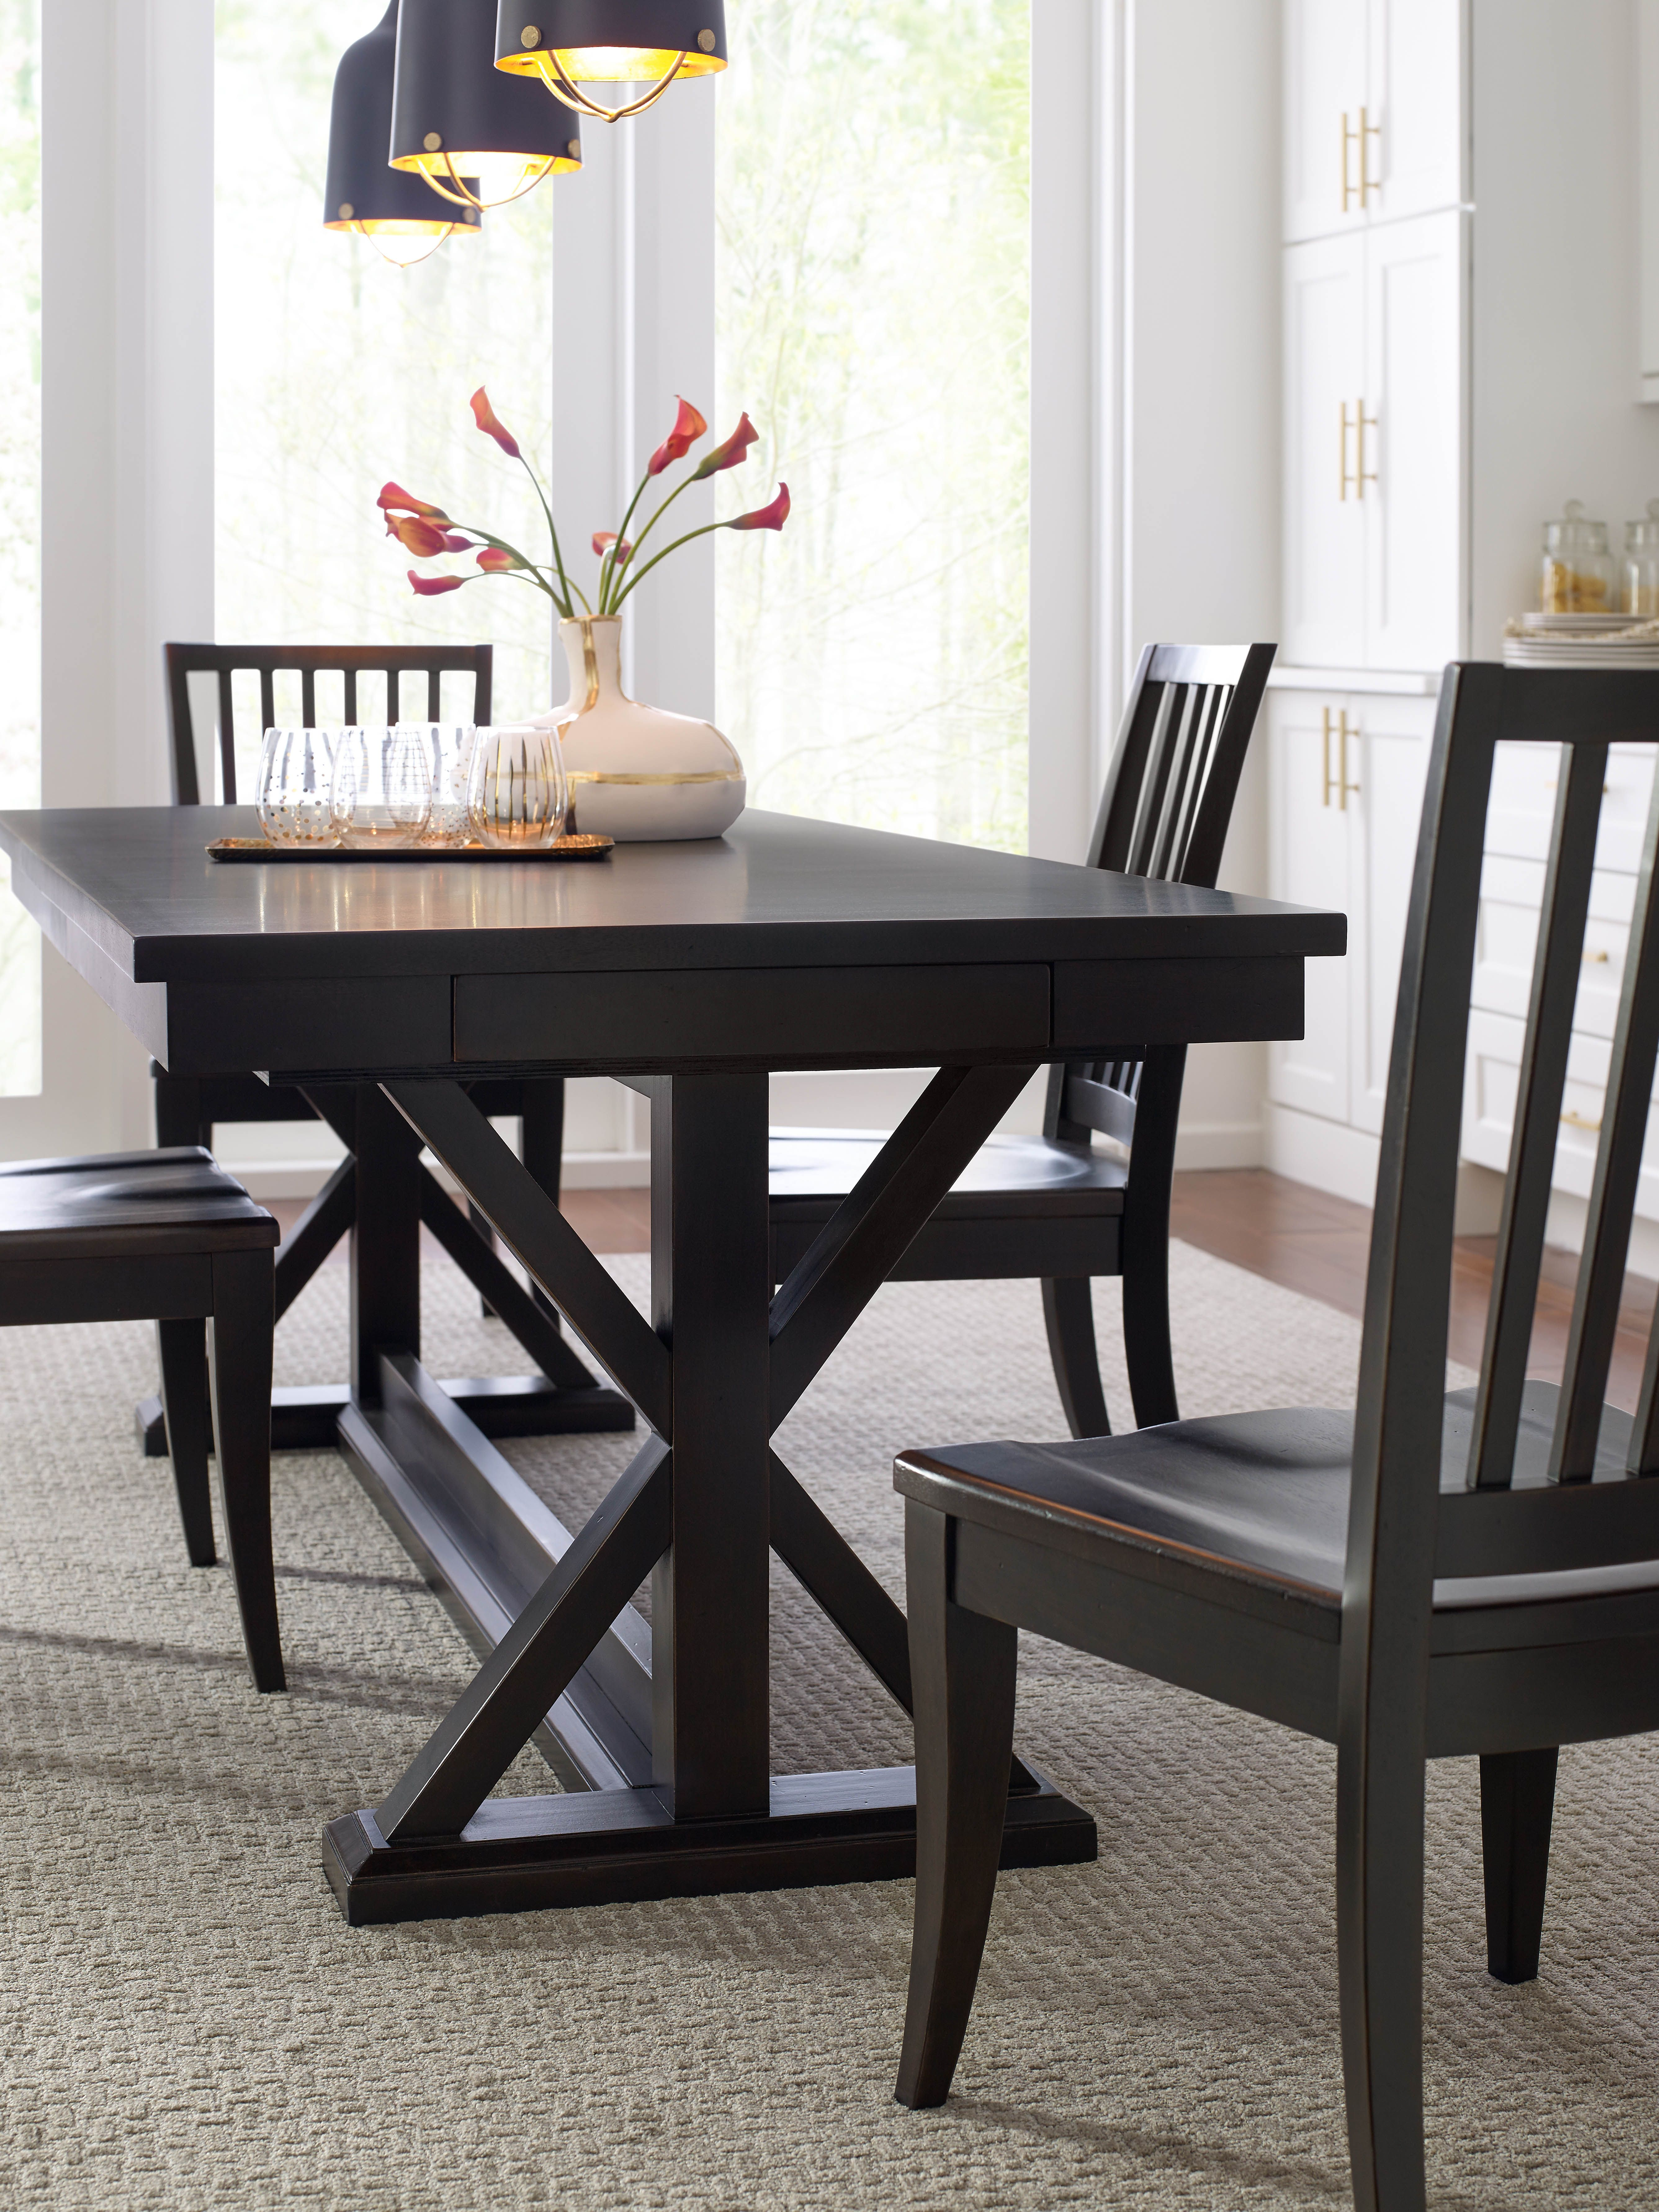 Rachael Ray S Everyday Dining Trestle Table In Peppercorn